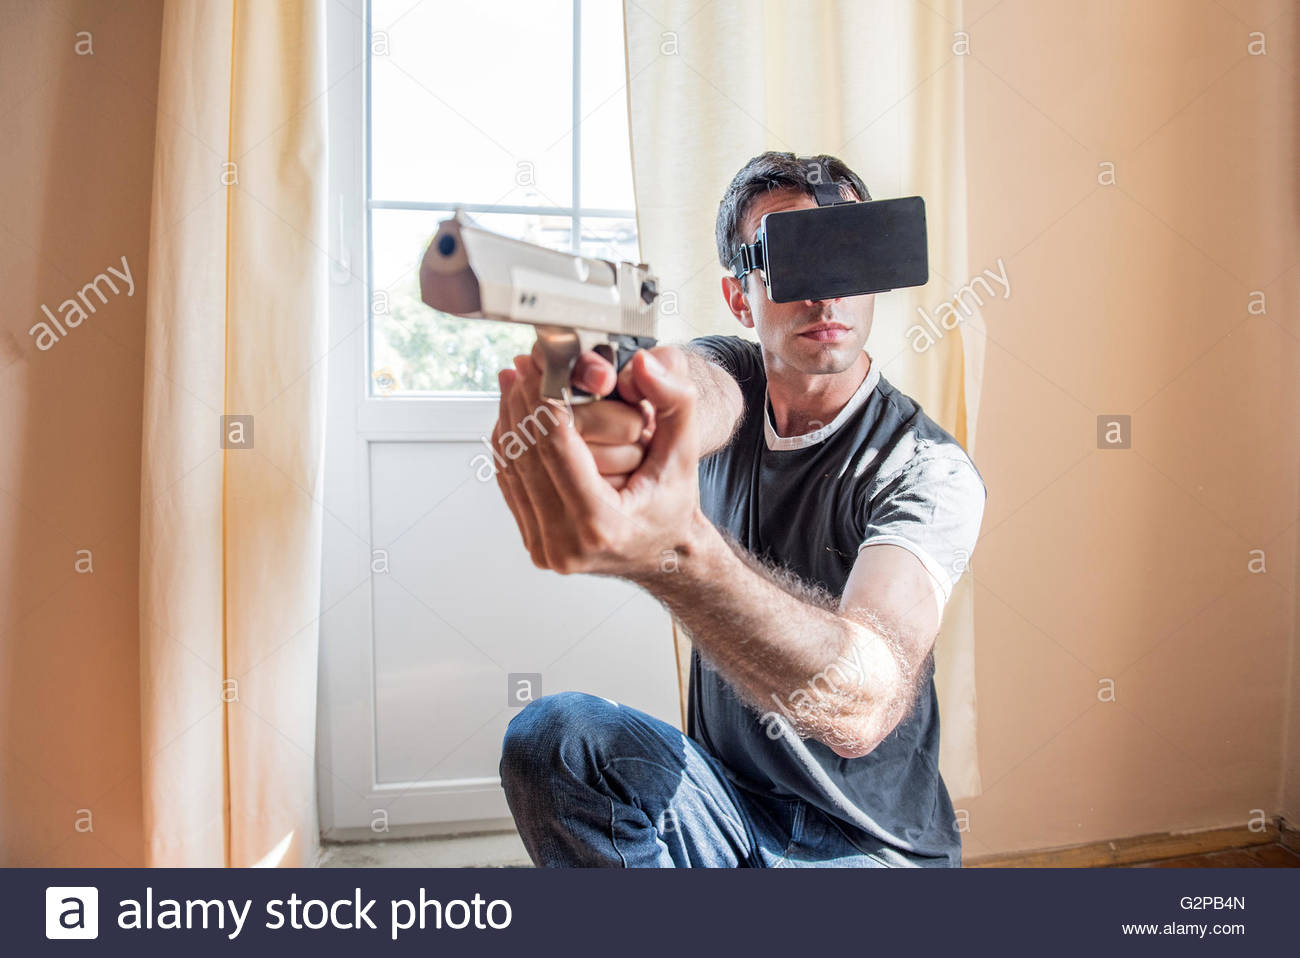 Virtual Reality Gaming - adult man wearing VR headgear goggles, holding a pistol, playing a shooter game at home - Stock Image